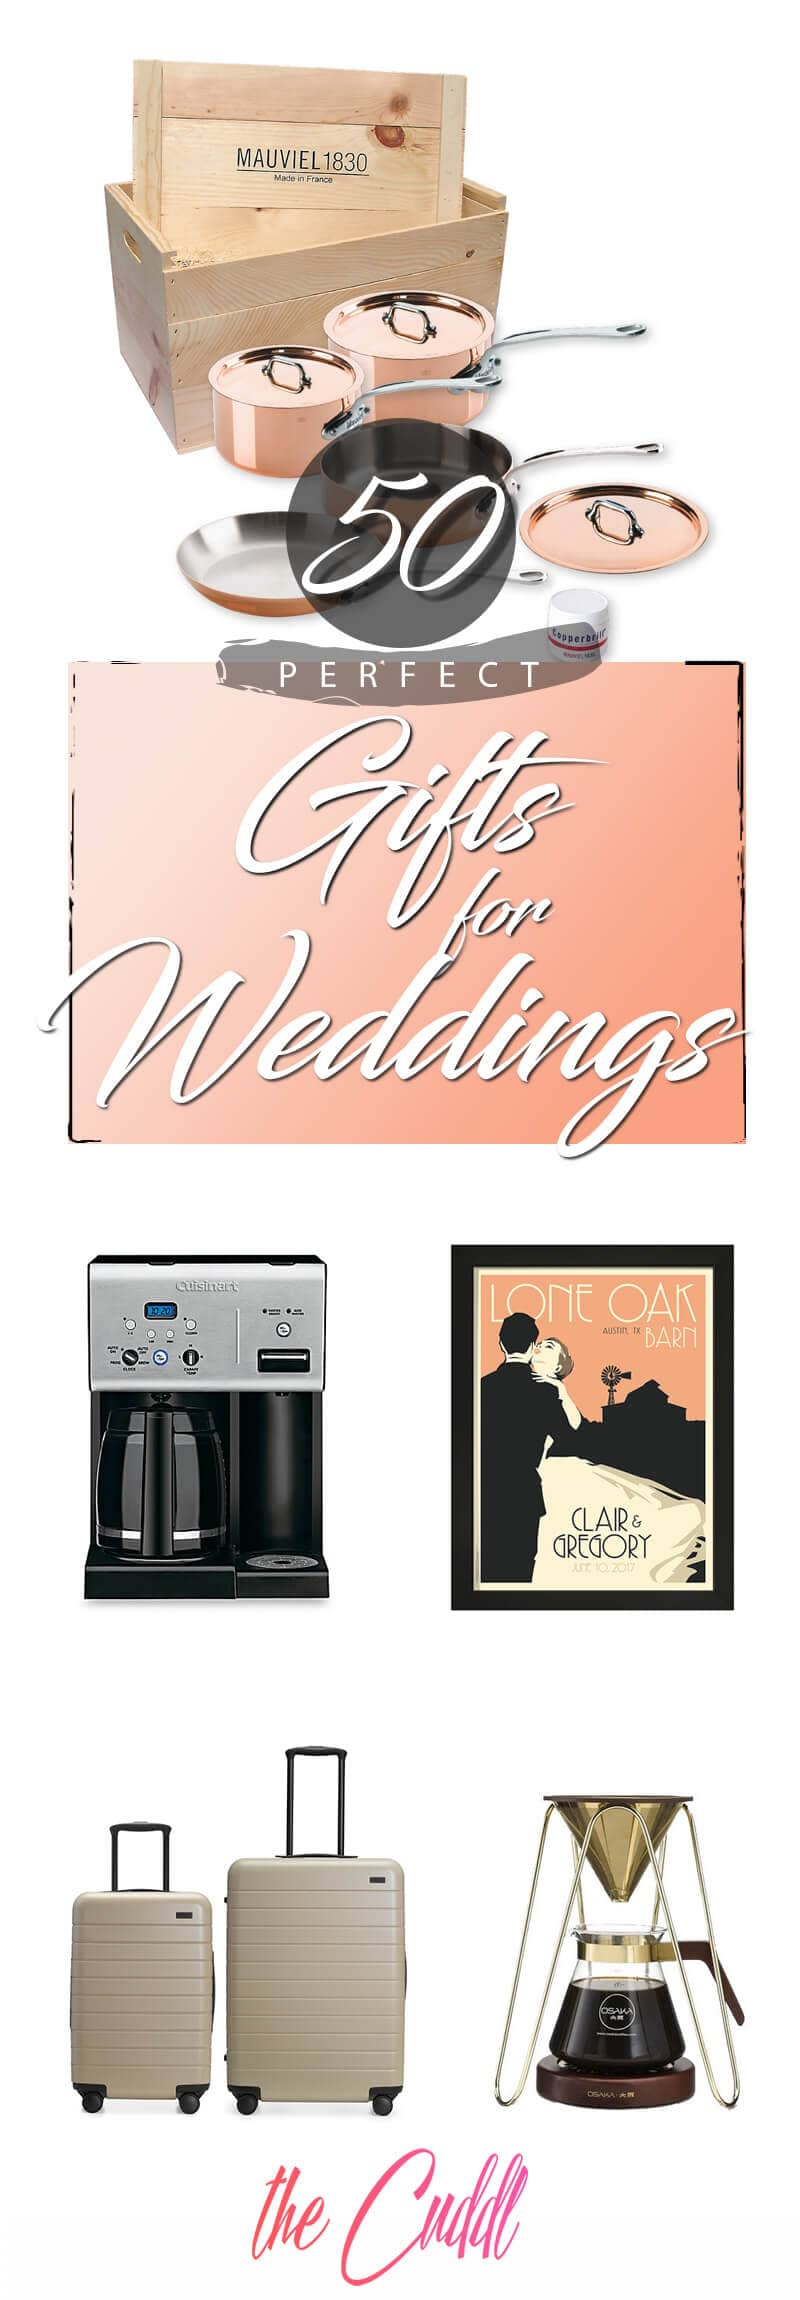 50 Super Fun Wedding Gifts that a Couple Would Be Lucky to Have